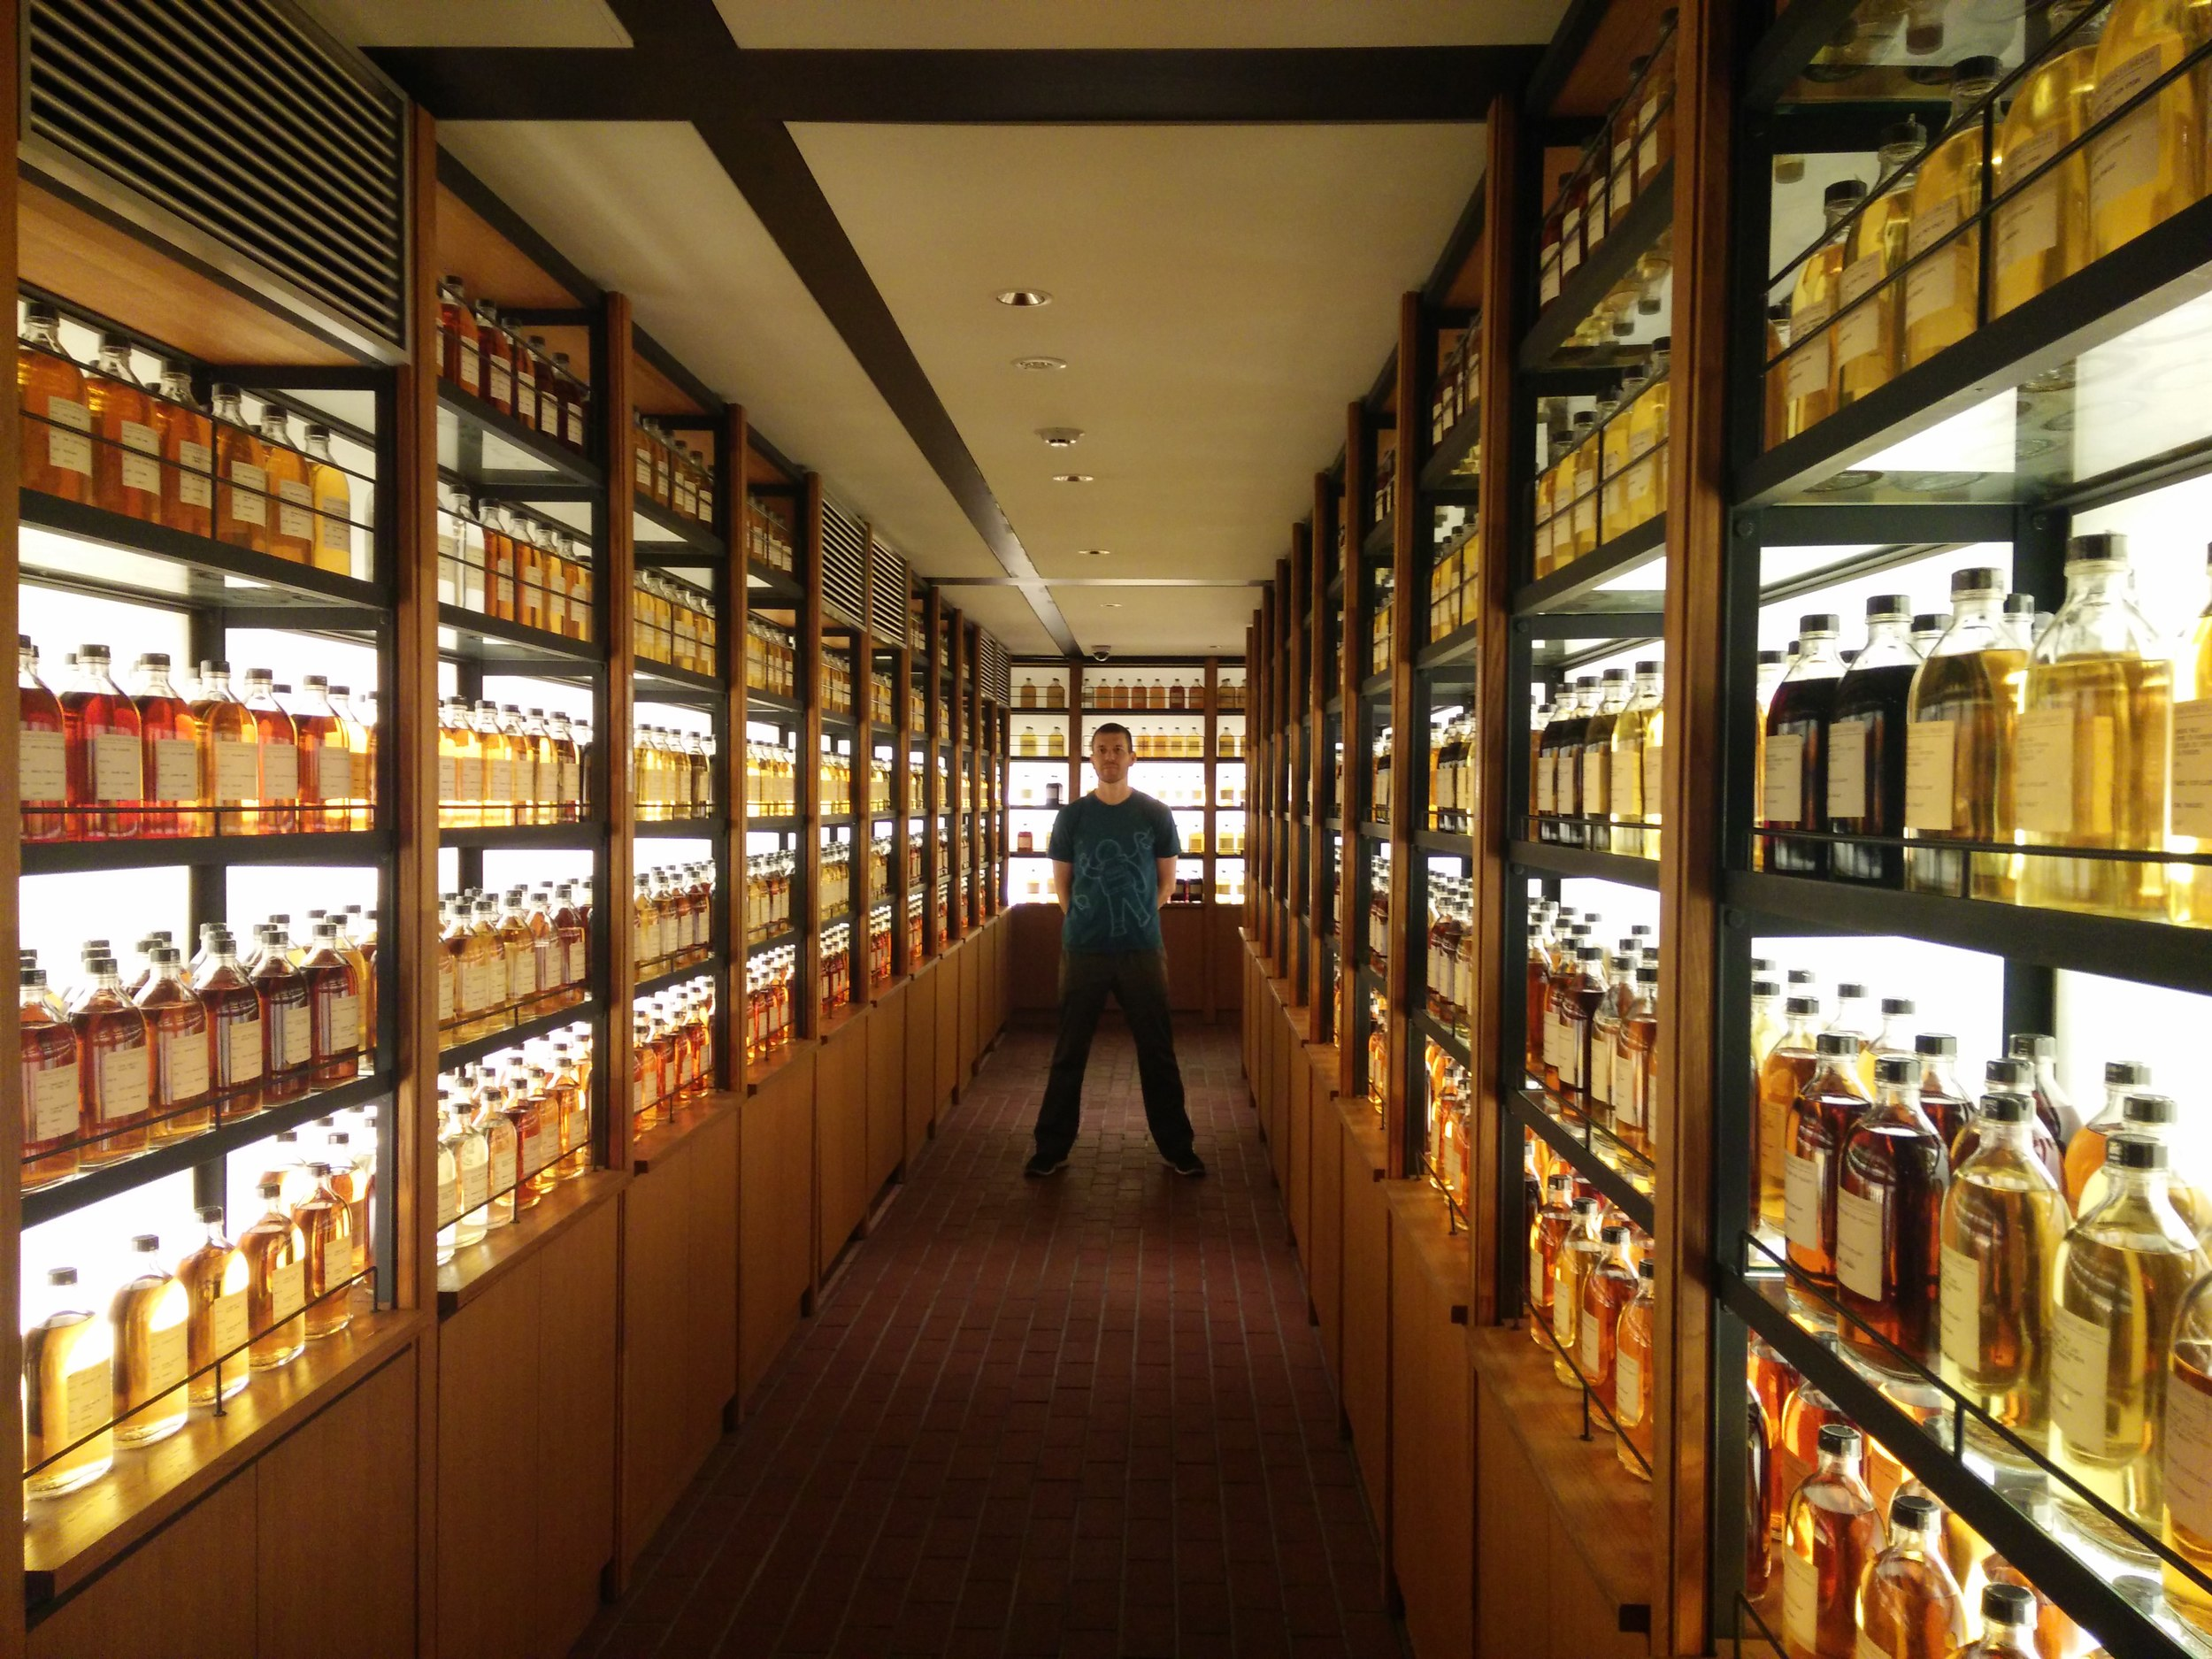 So... much... whisky.